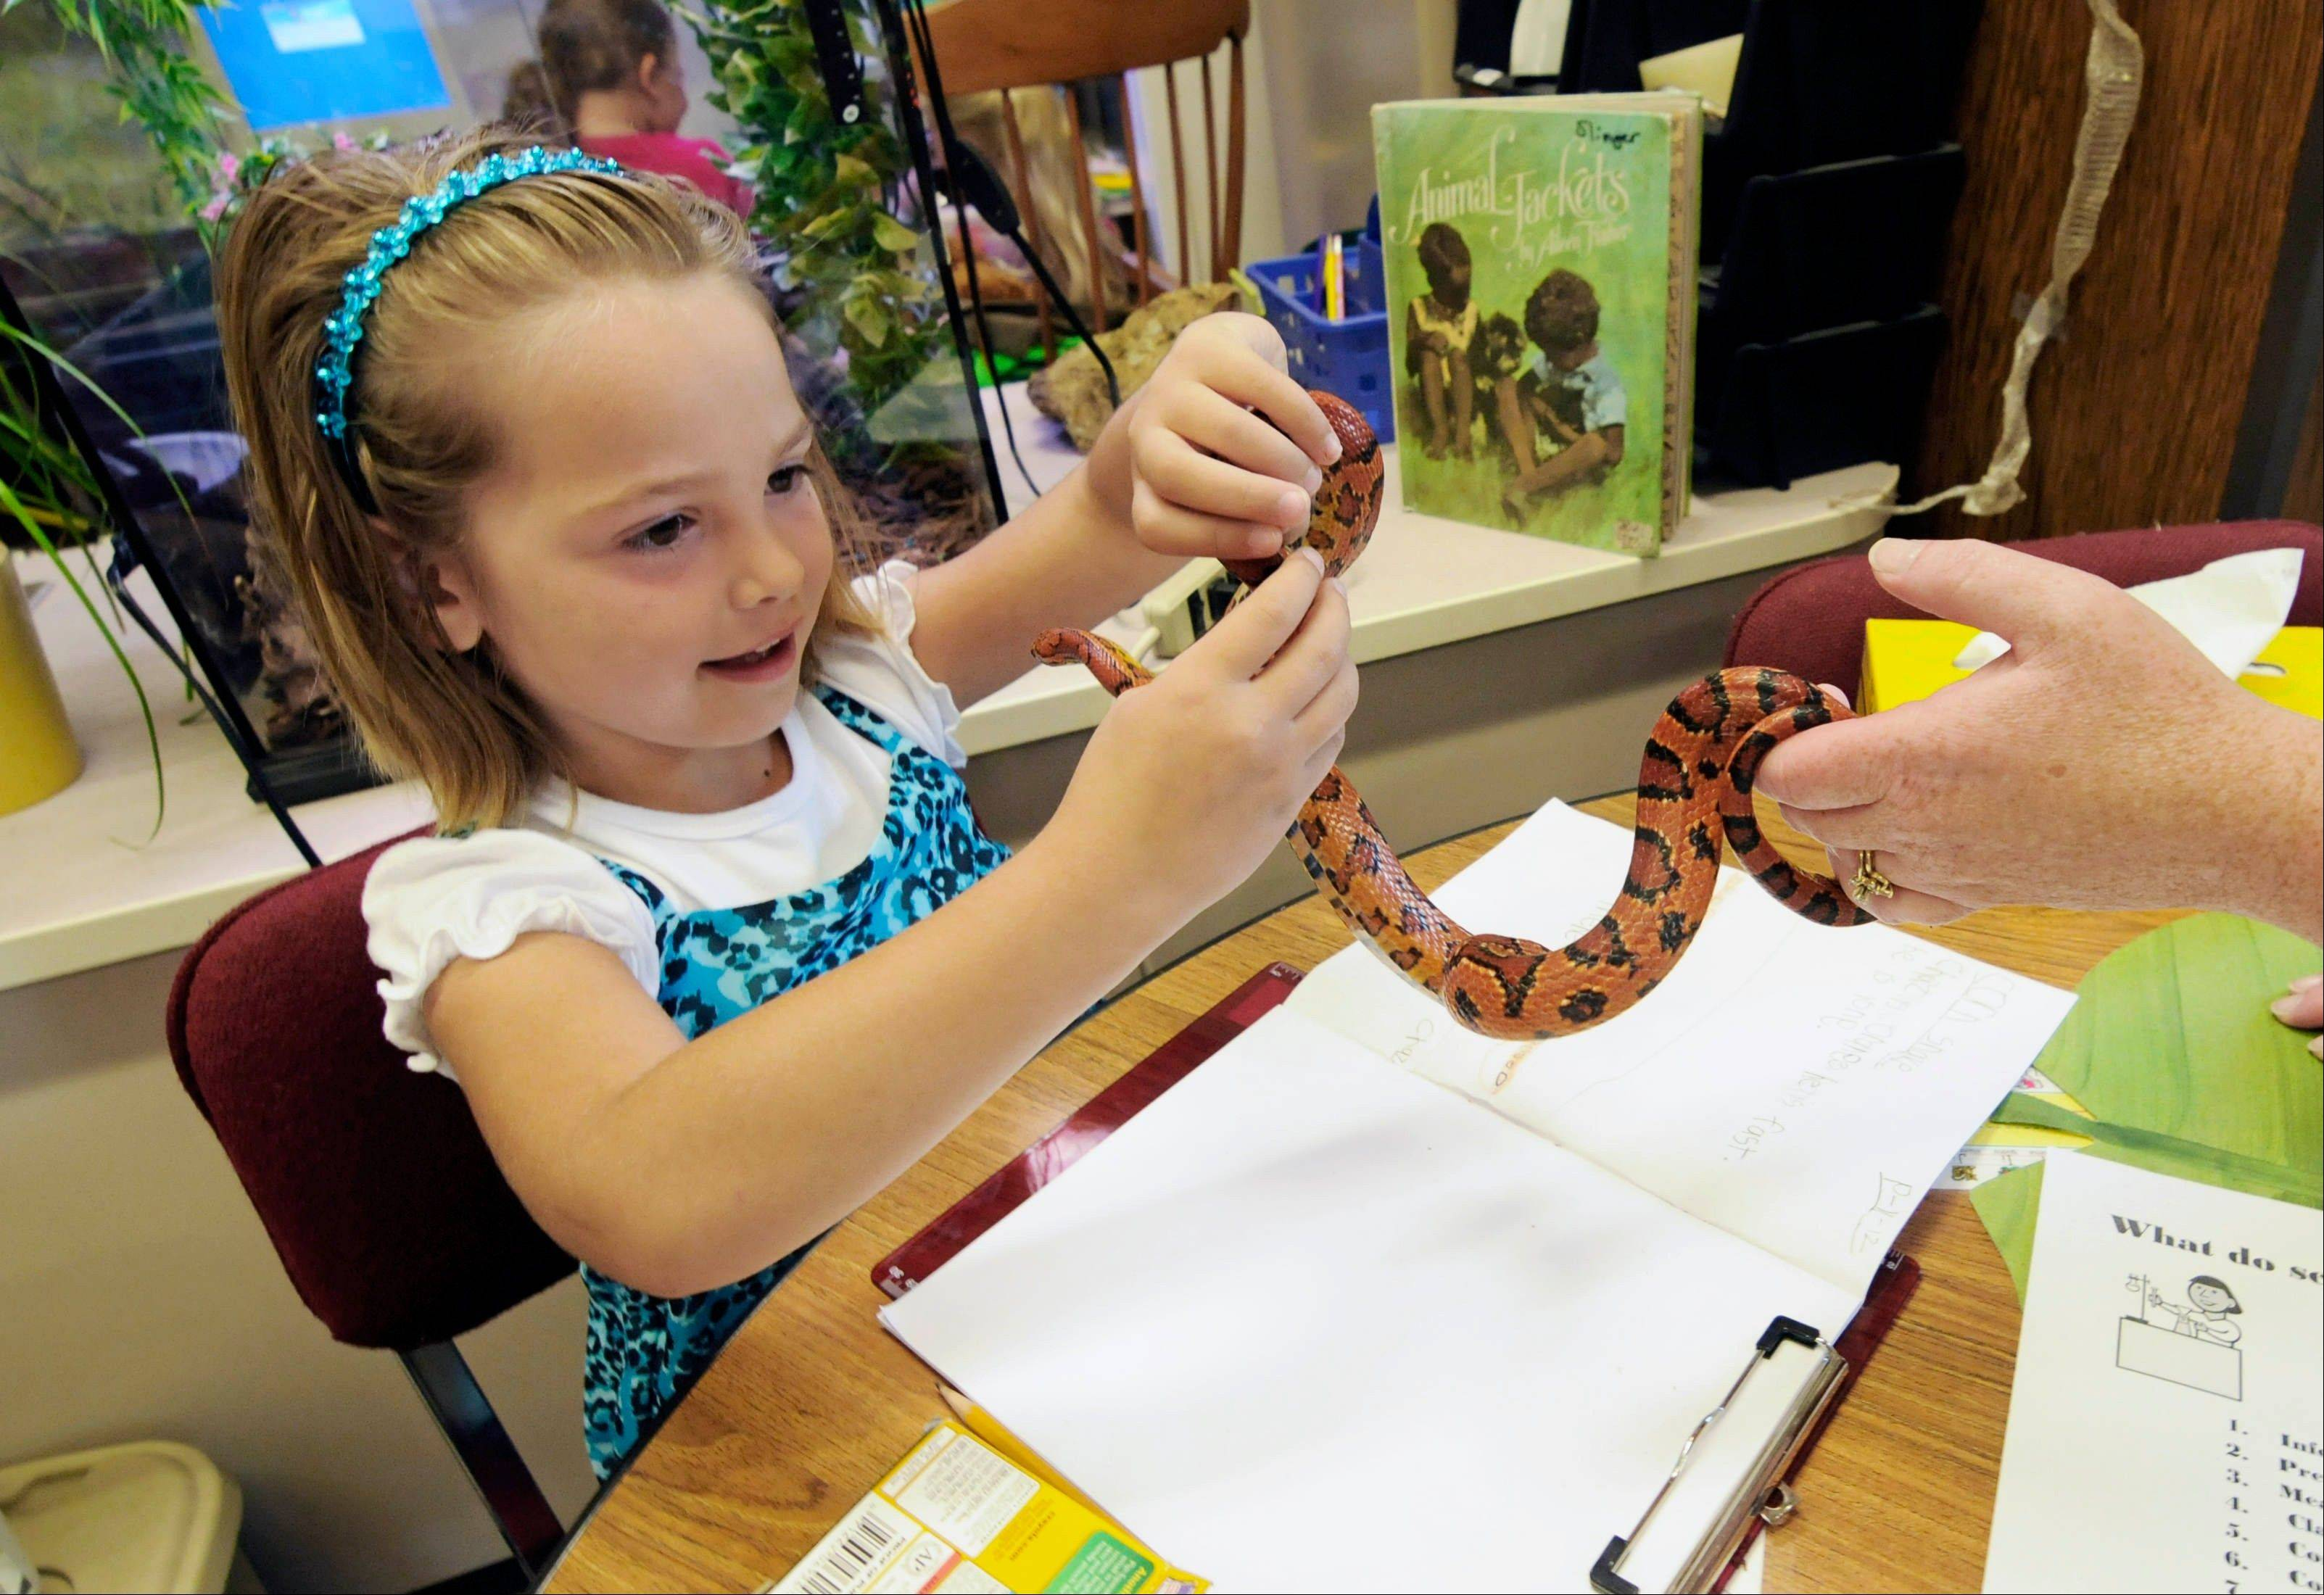 Hailey Fink gets acquainted with a corn snake in the first-grade classroom of Dawn Slinger in Farmington, Minn.